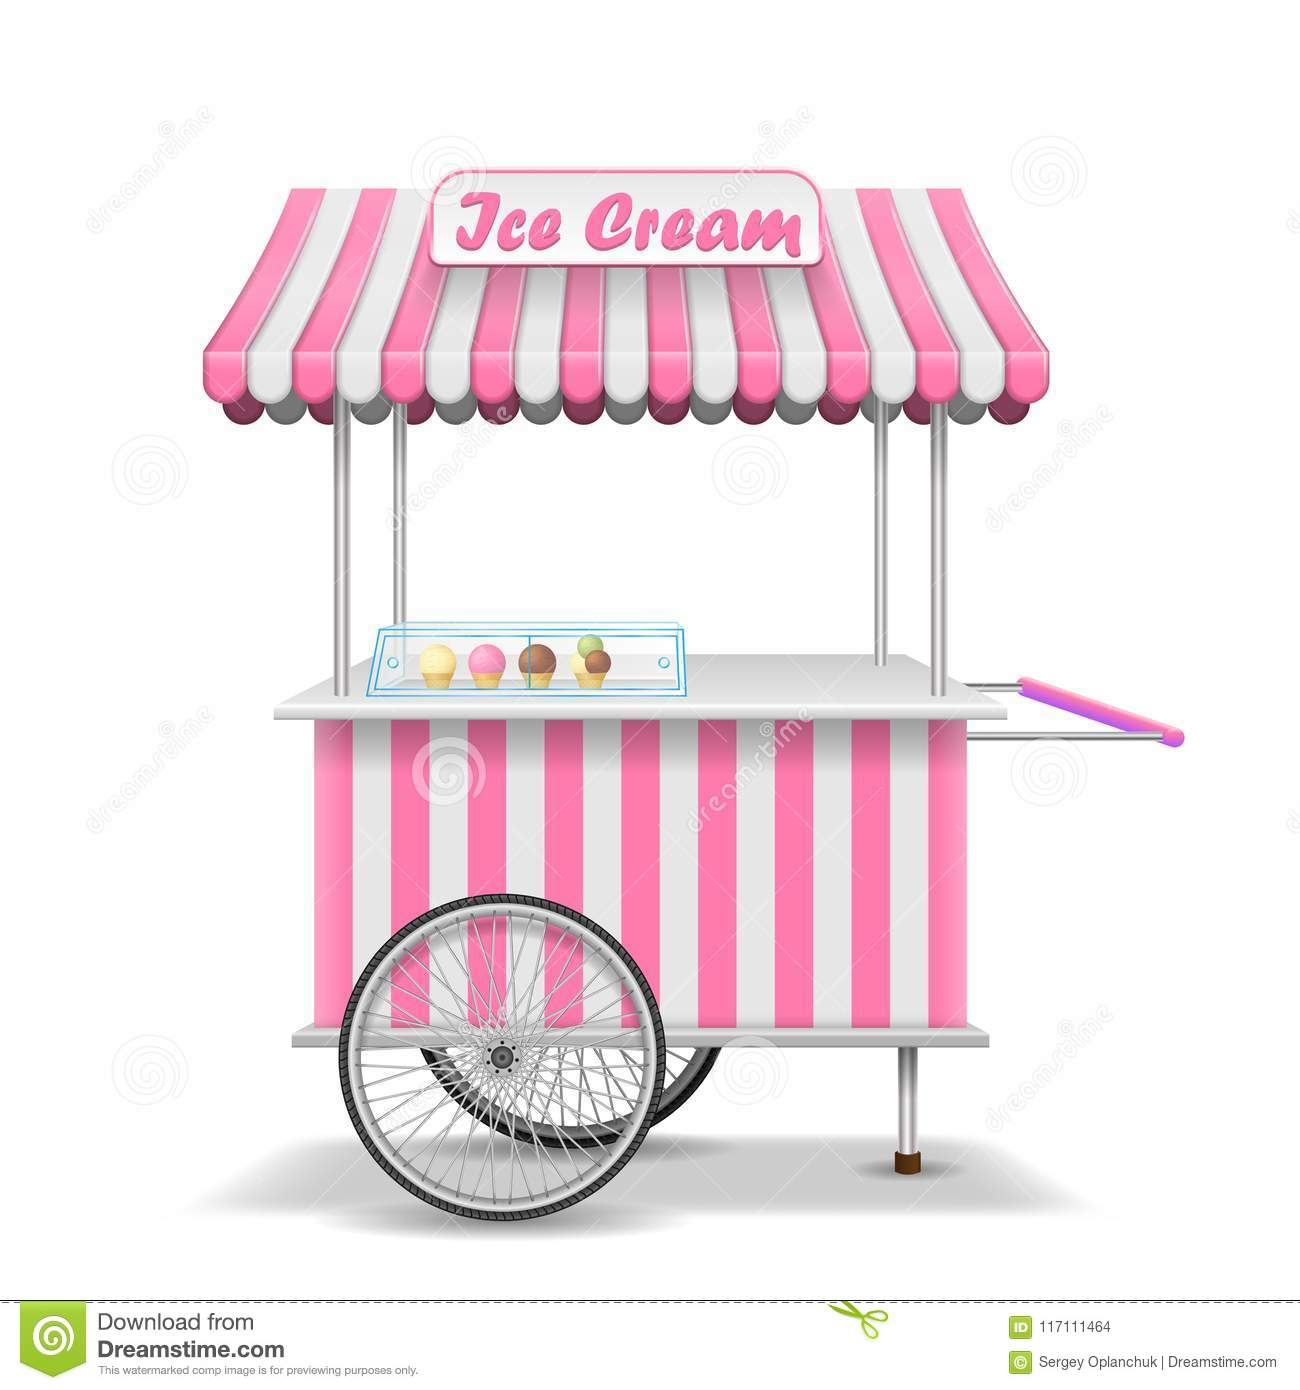 Realistic Street Food Cart With Wheels  Mobile Pink Ice Cream Market